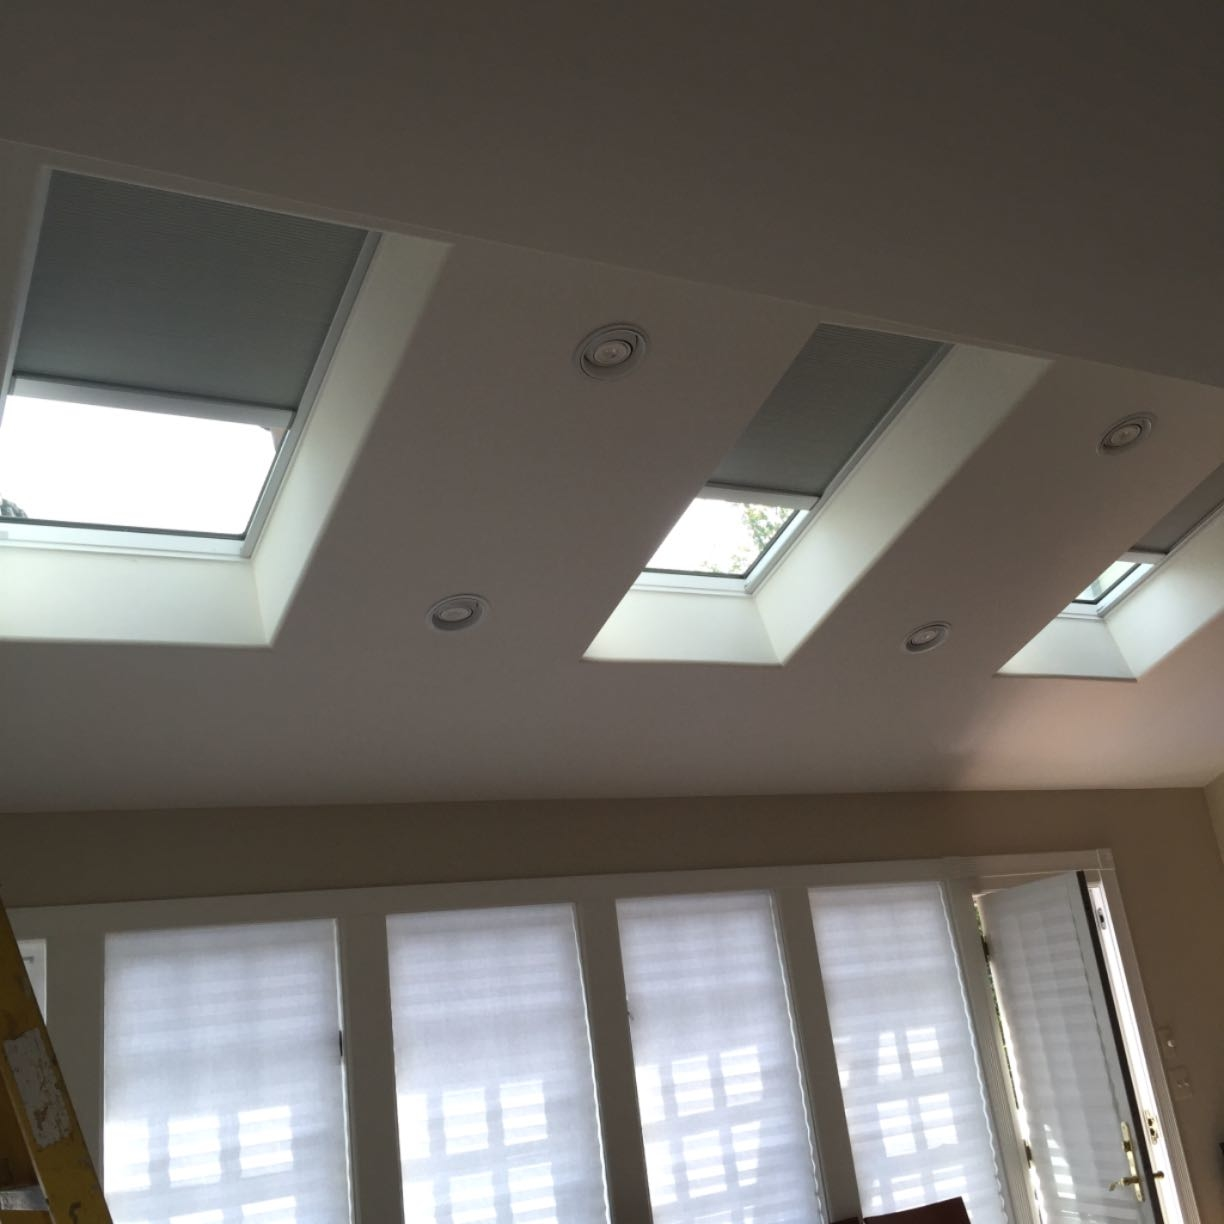 Triple Skylight Installation With Remote Control Shades In